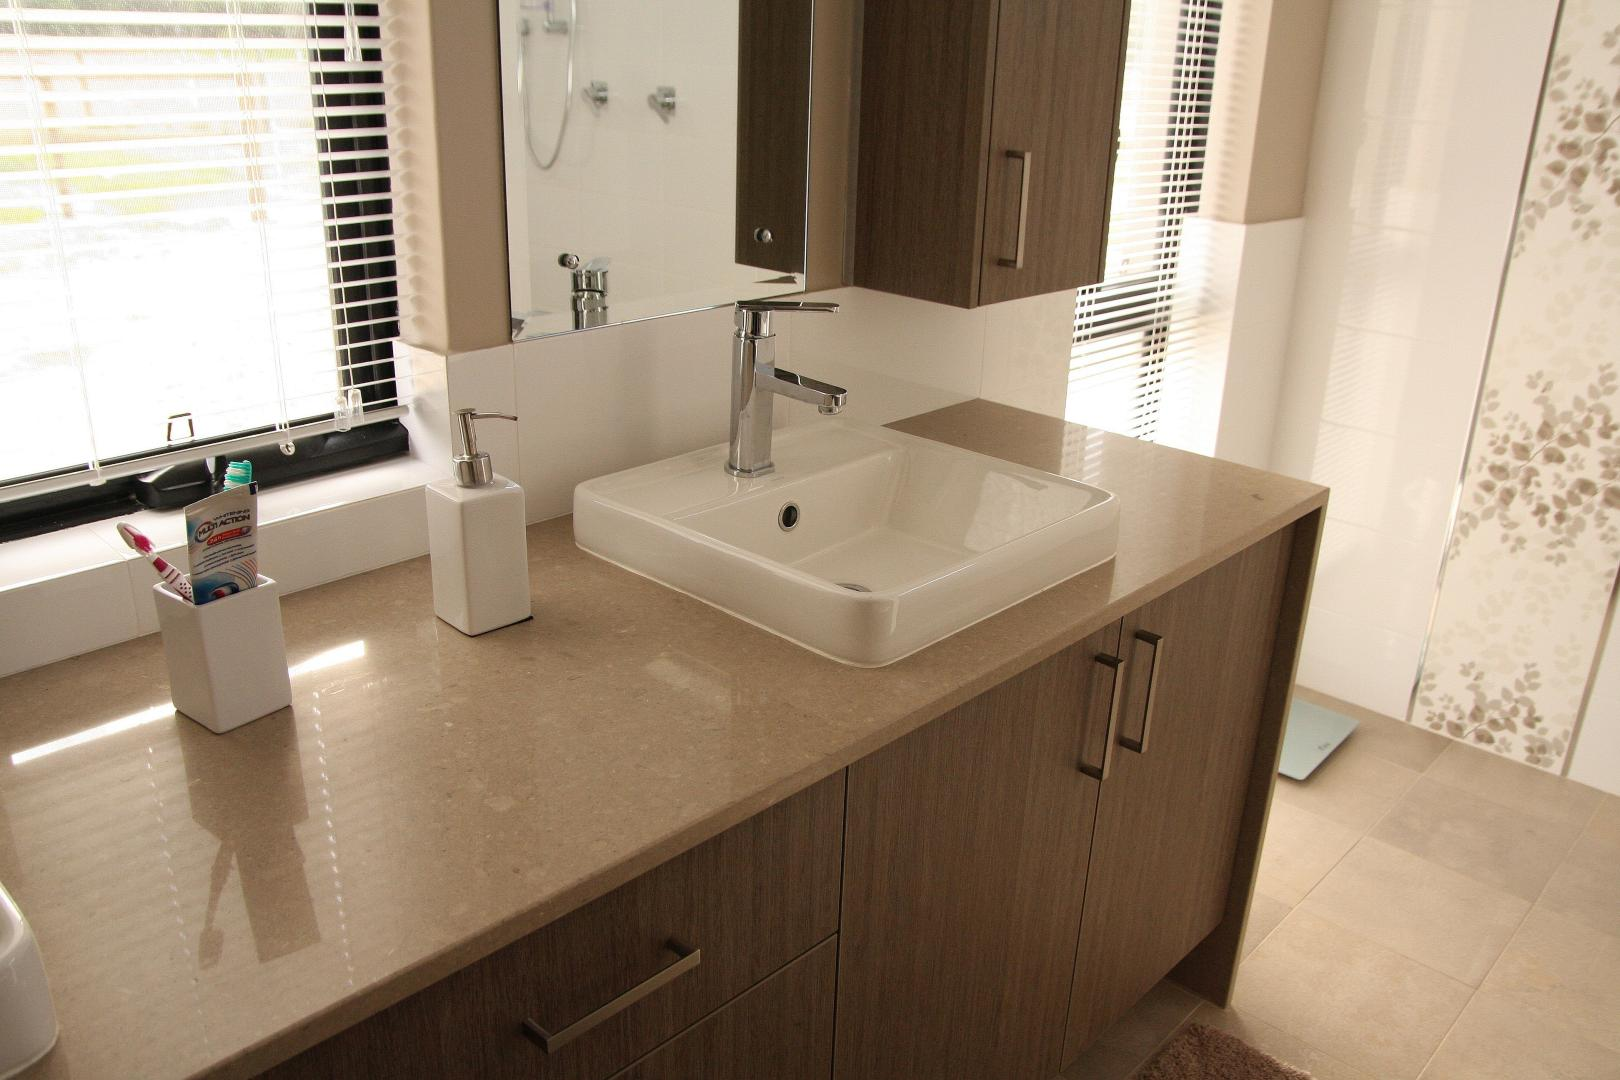 Ensuite vanity with Caesarstone Shitake 4230 benchtop with waterfall end.